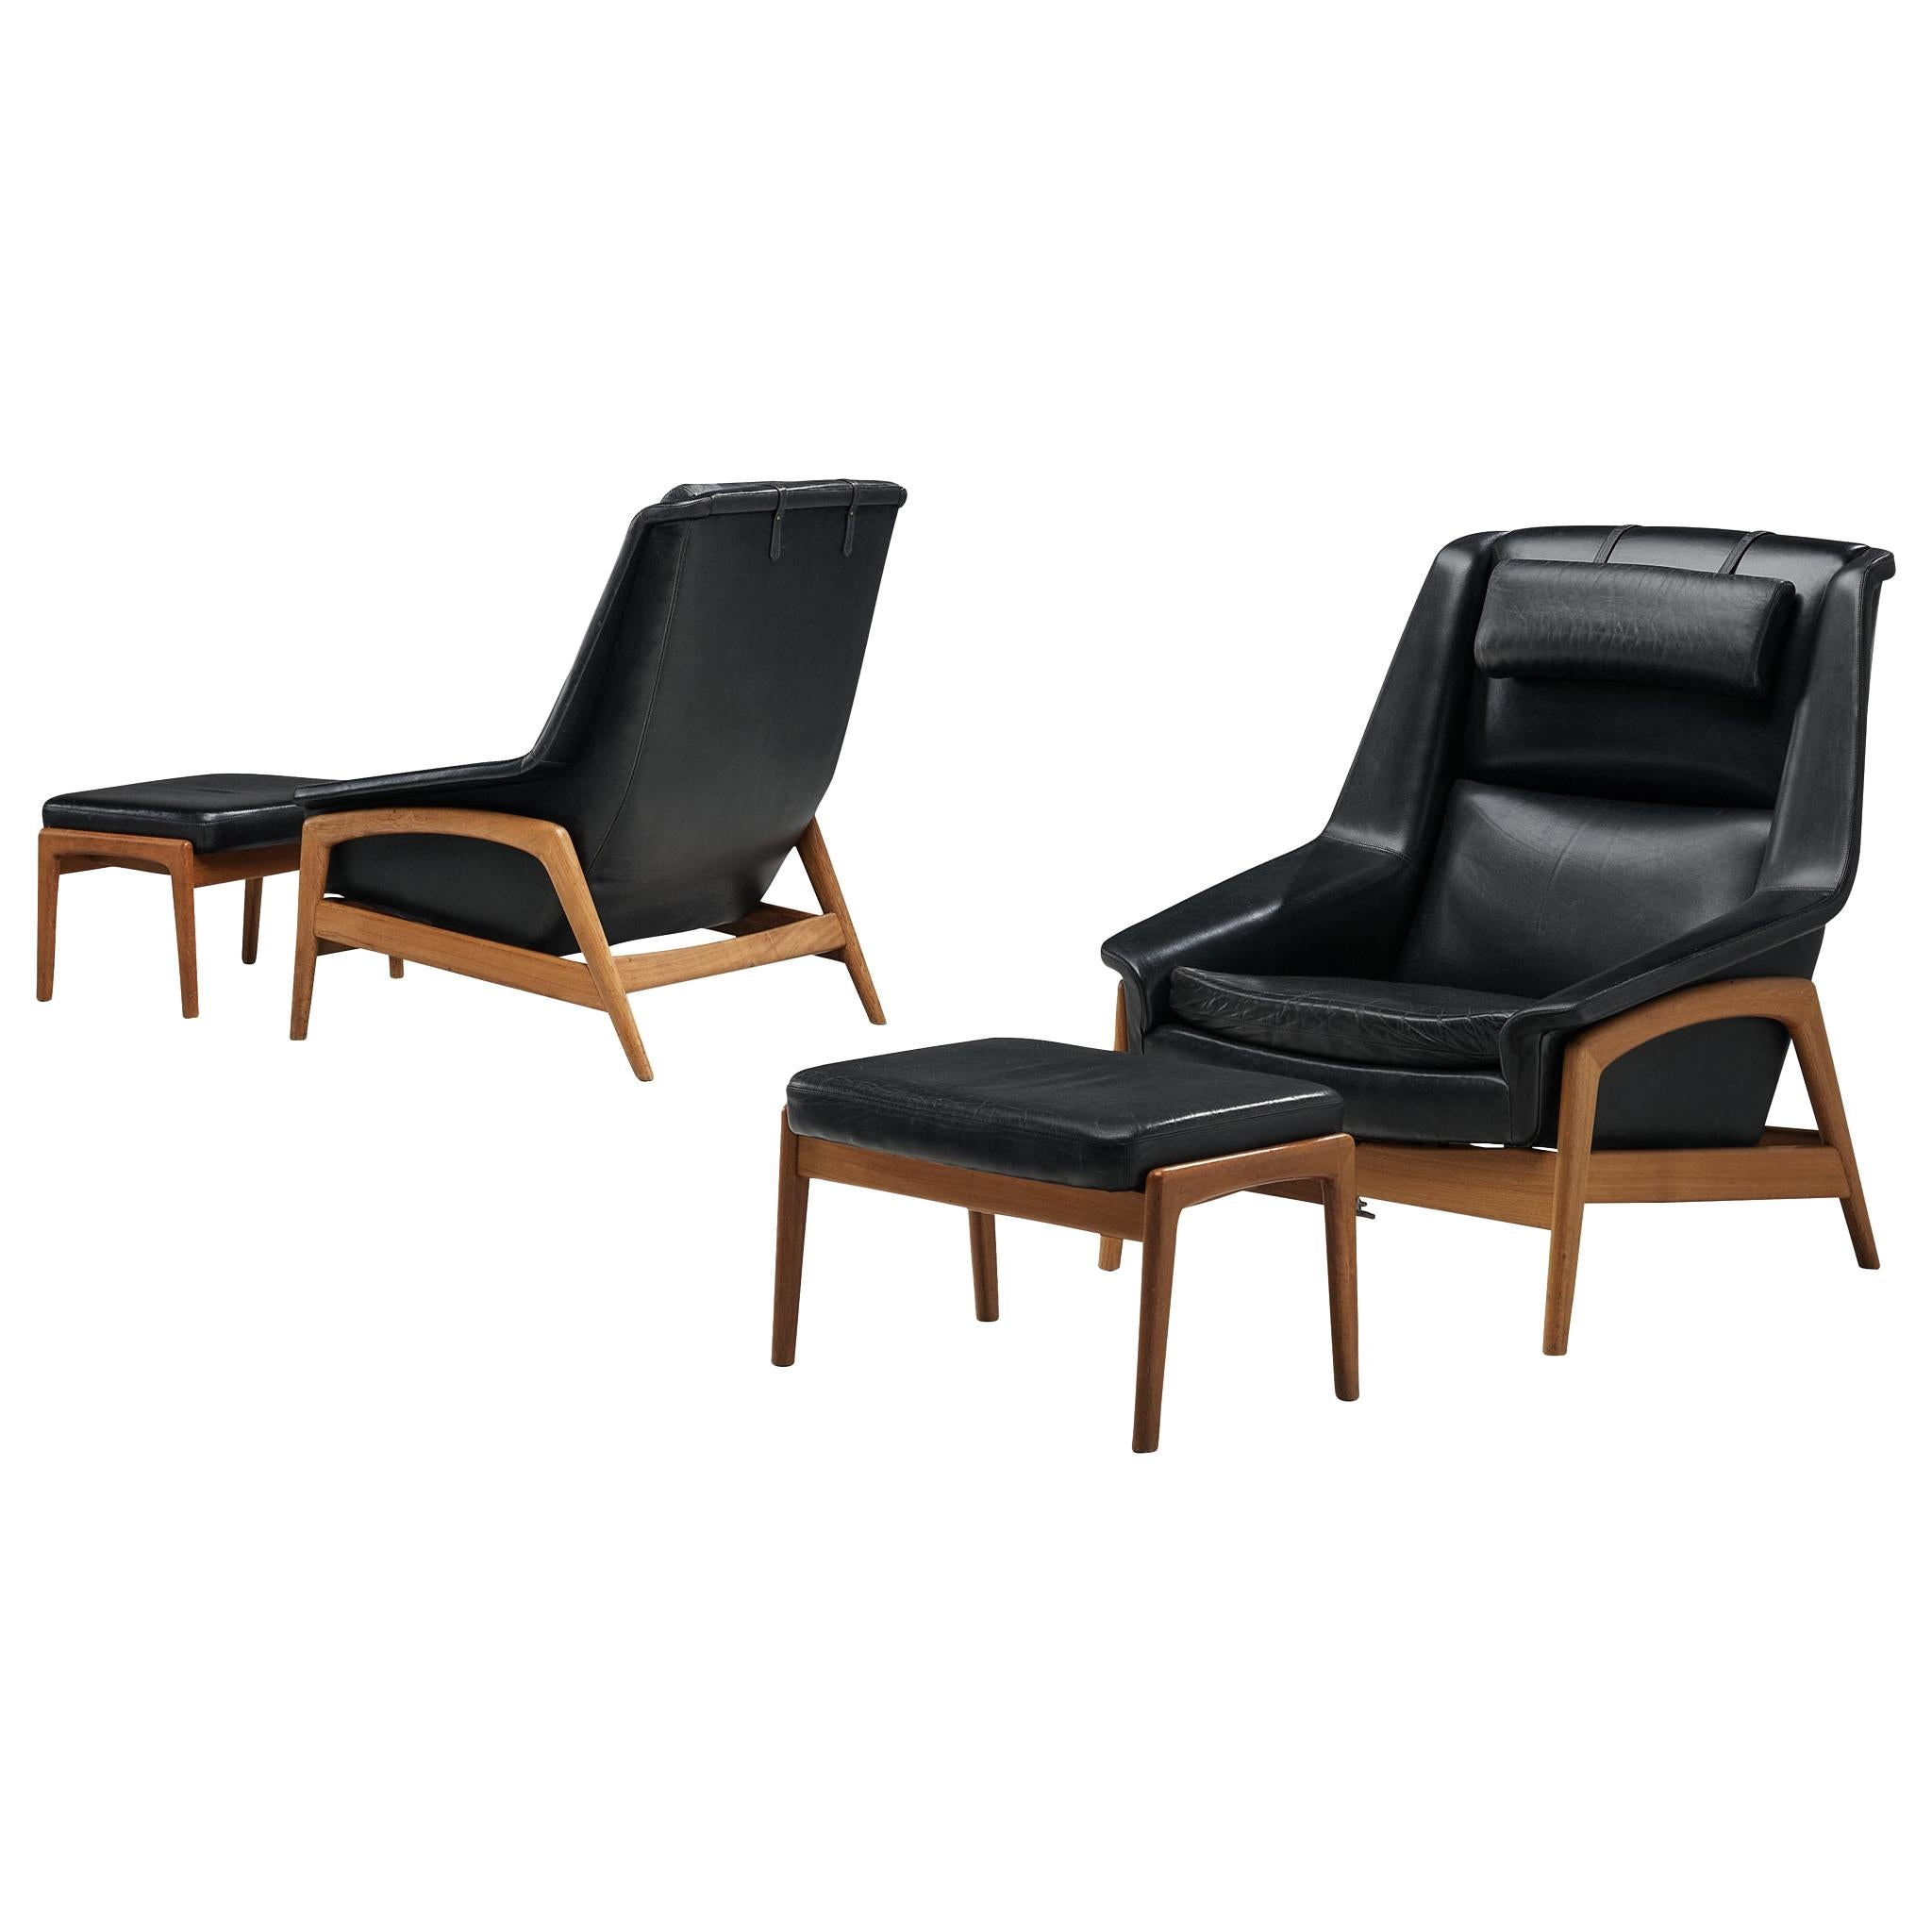 Folke Ohlsson Pair of 'Profil' Lounge Chairs in Black Leather